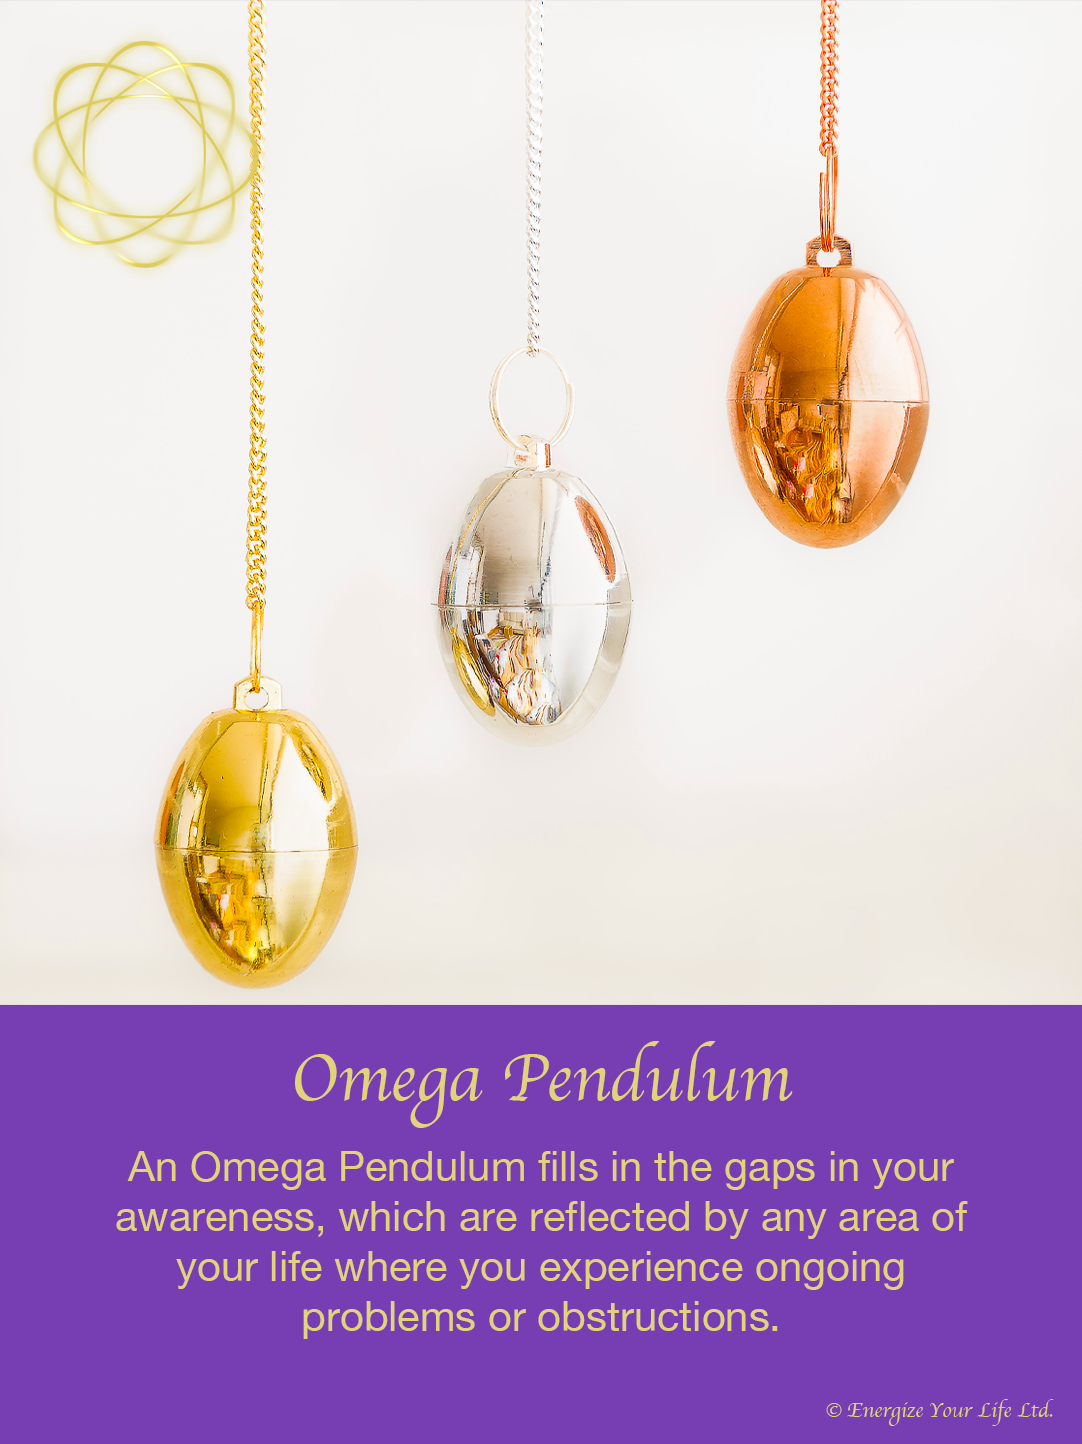 image of gold, silver and copper pendulums